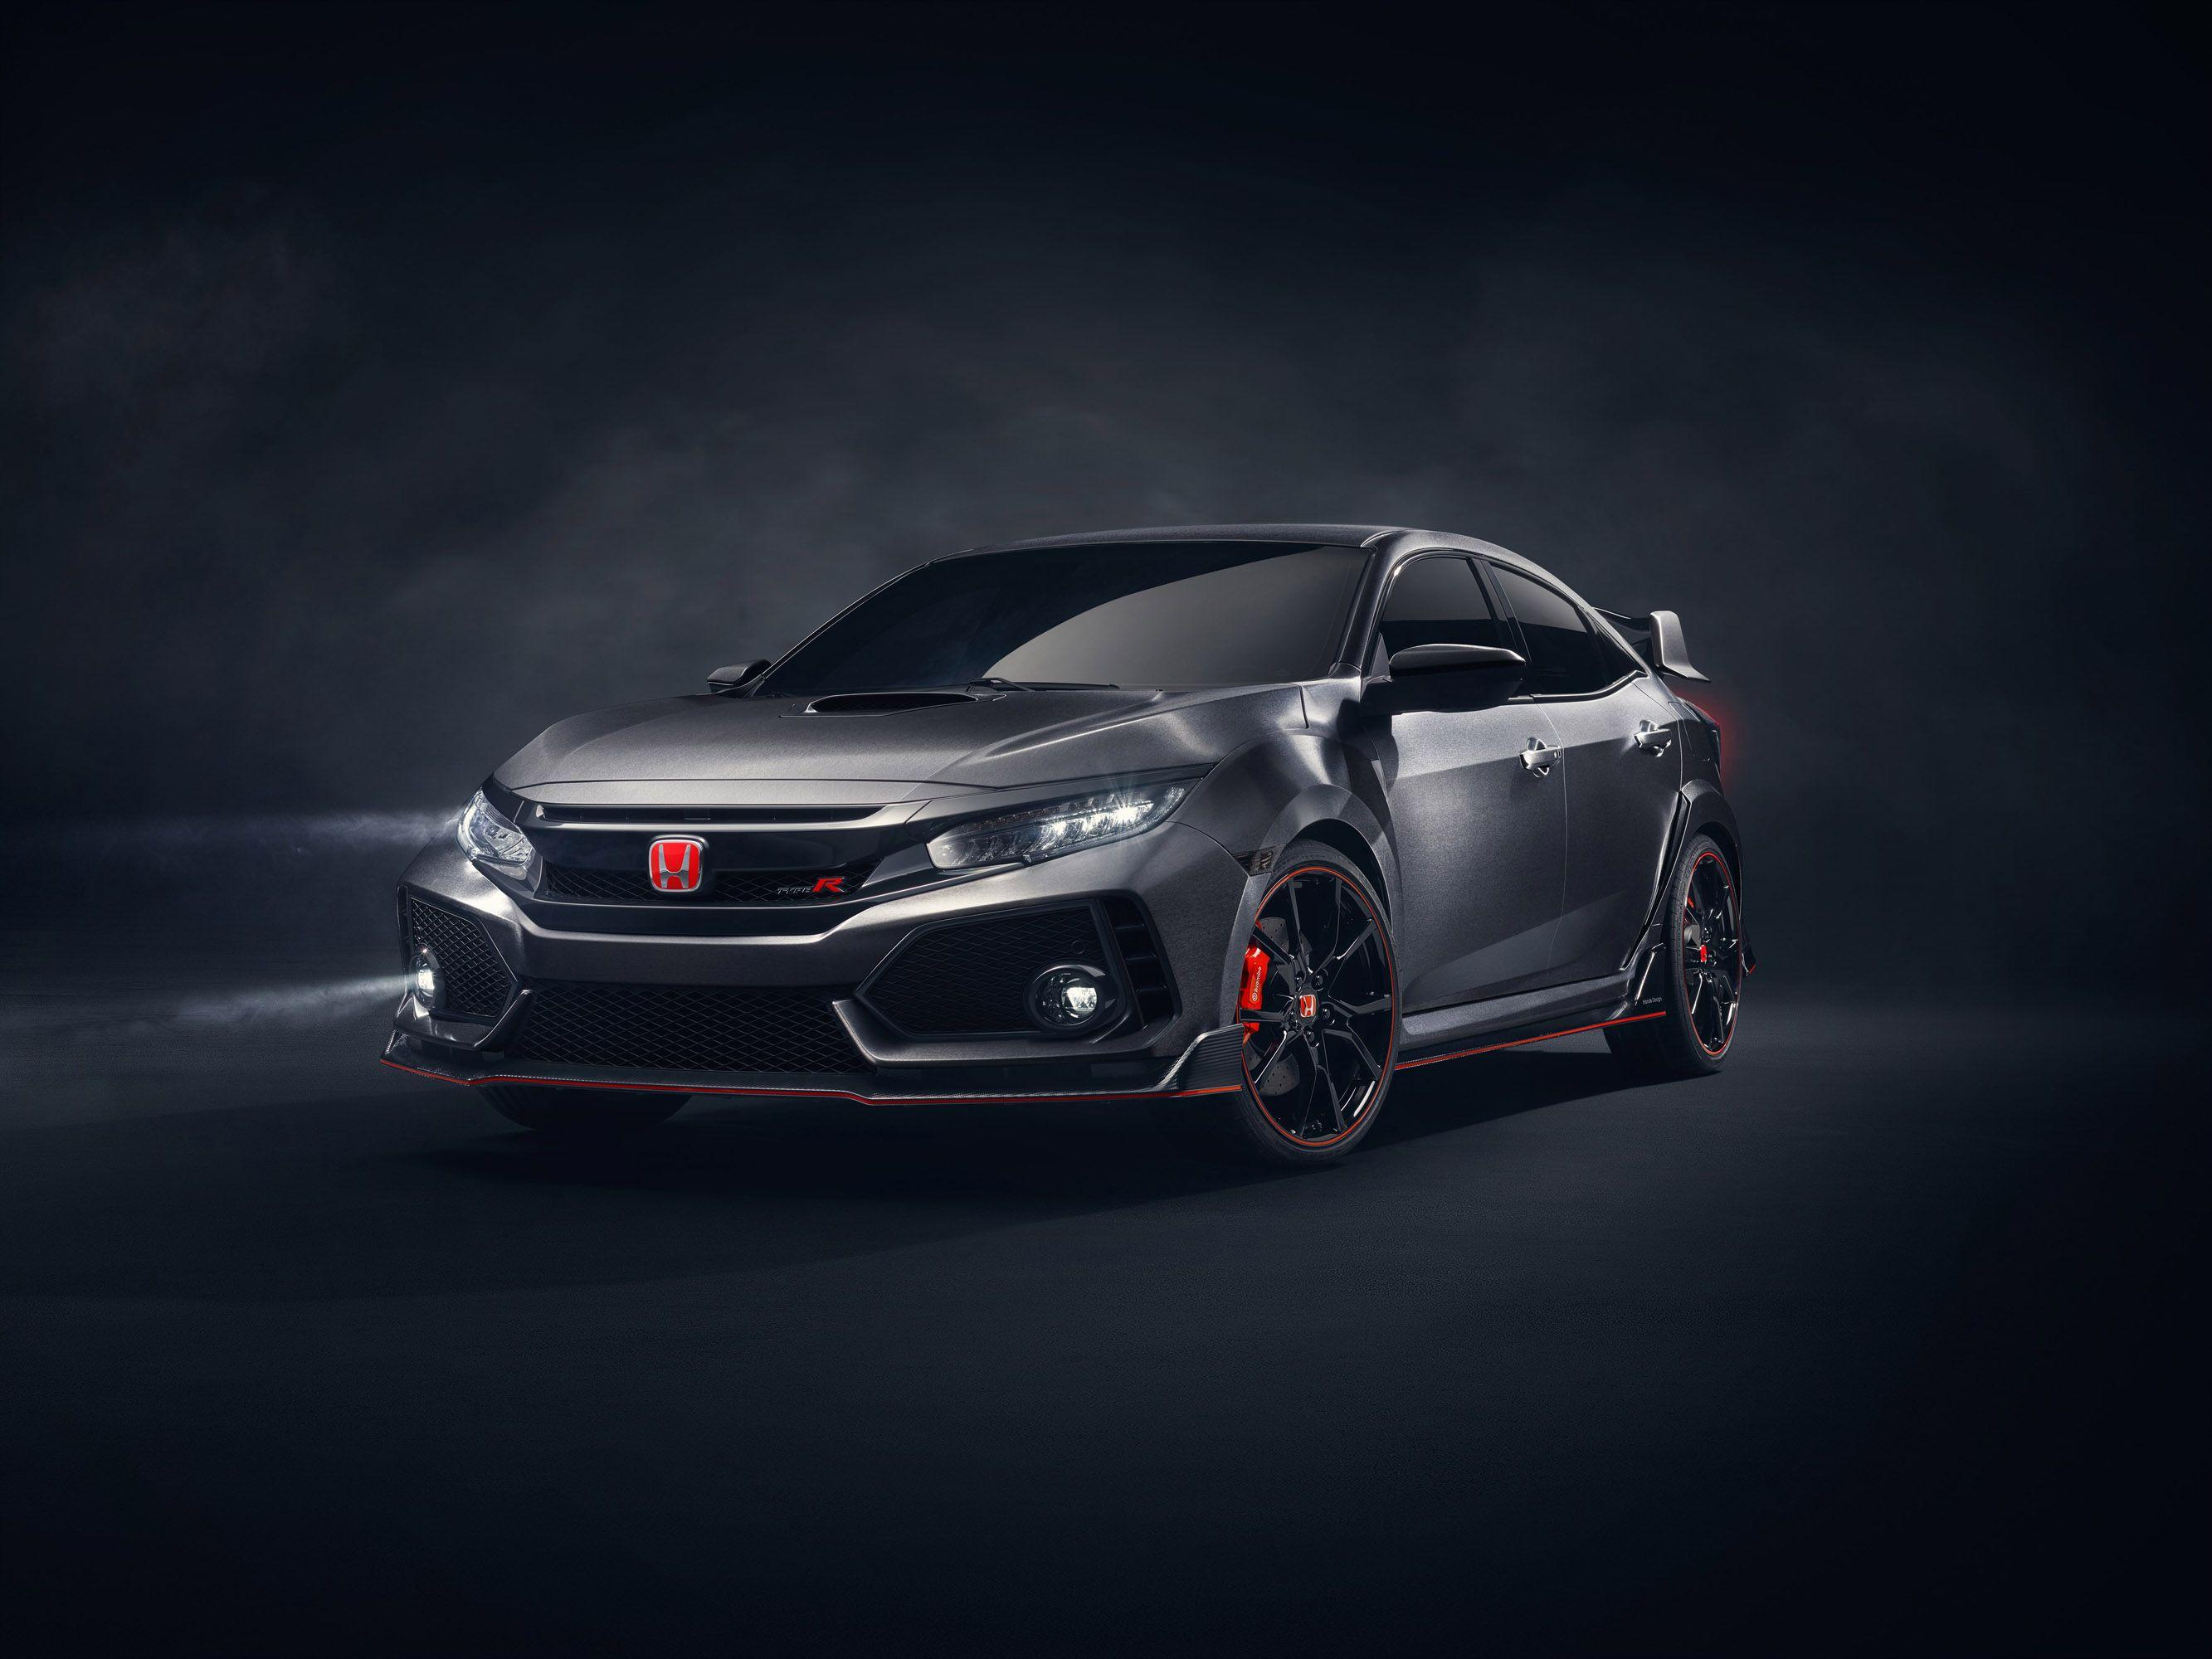 Honda Civic Type R Wallpapers Wallpaper Cave